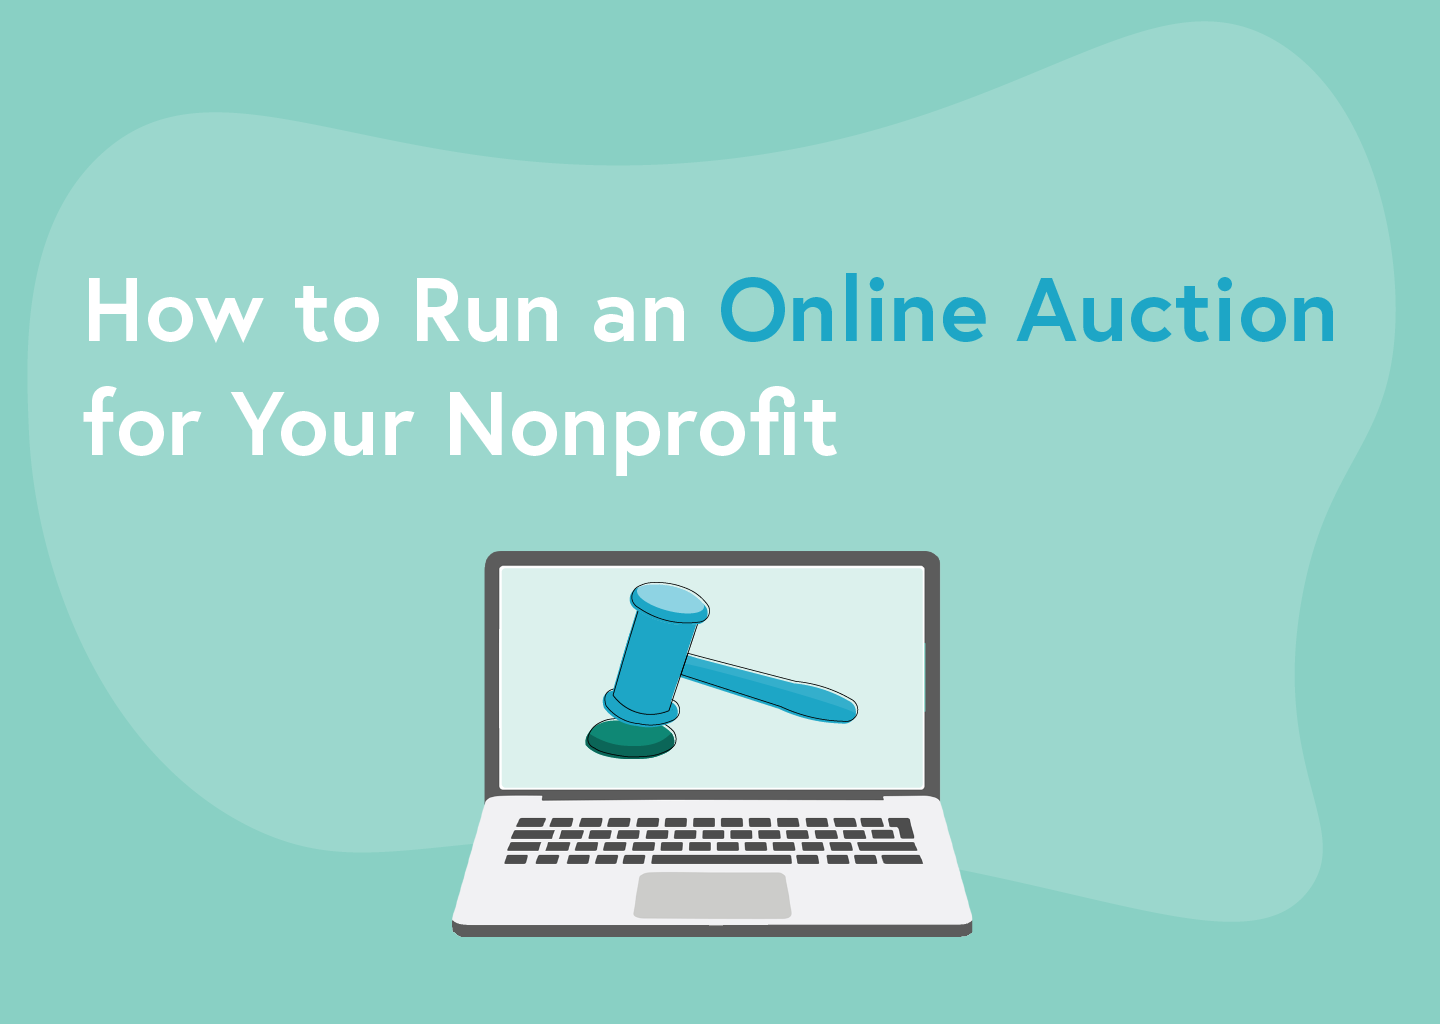 online auctions for nonprofits